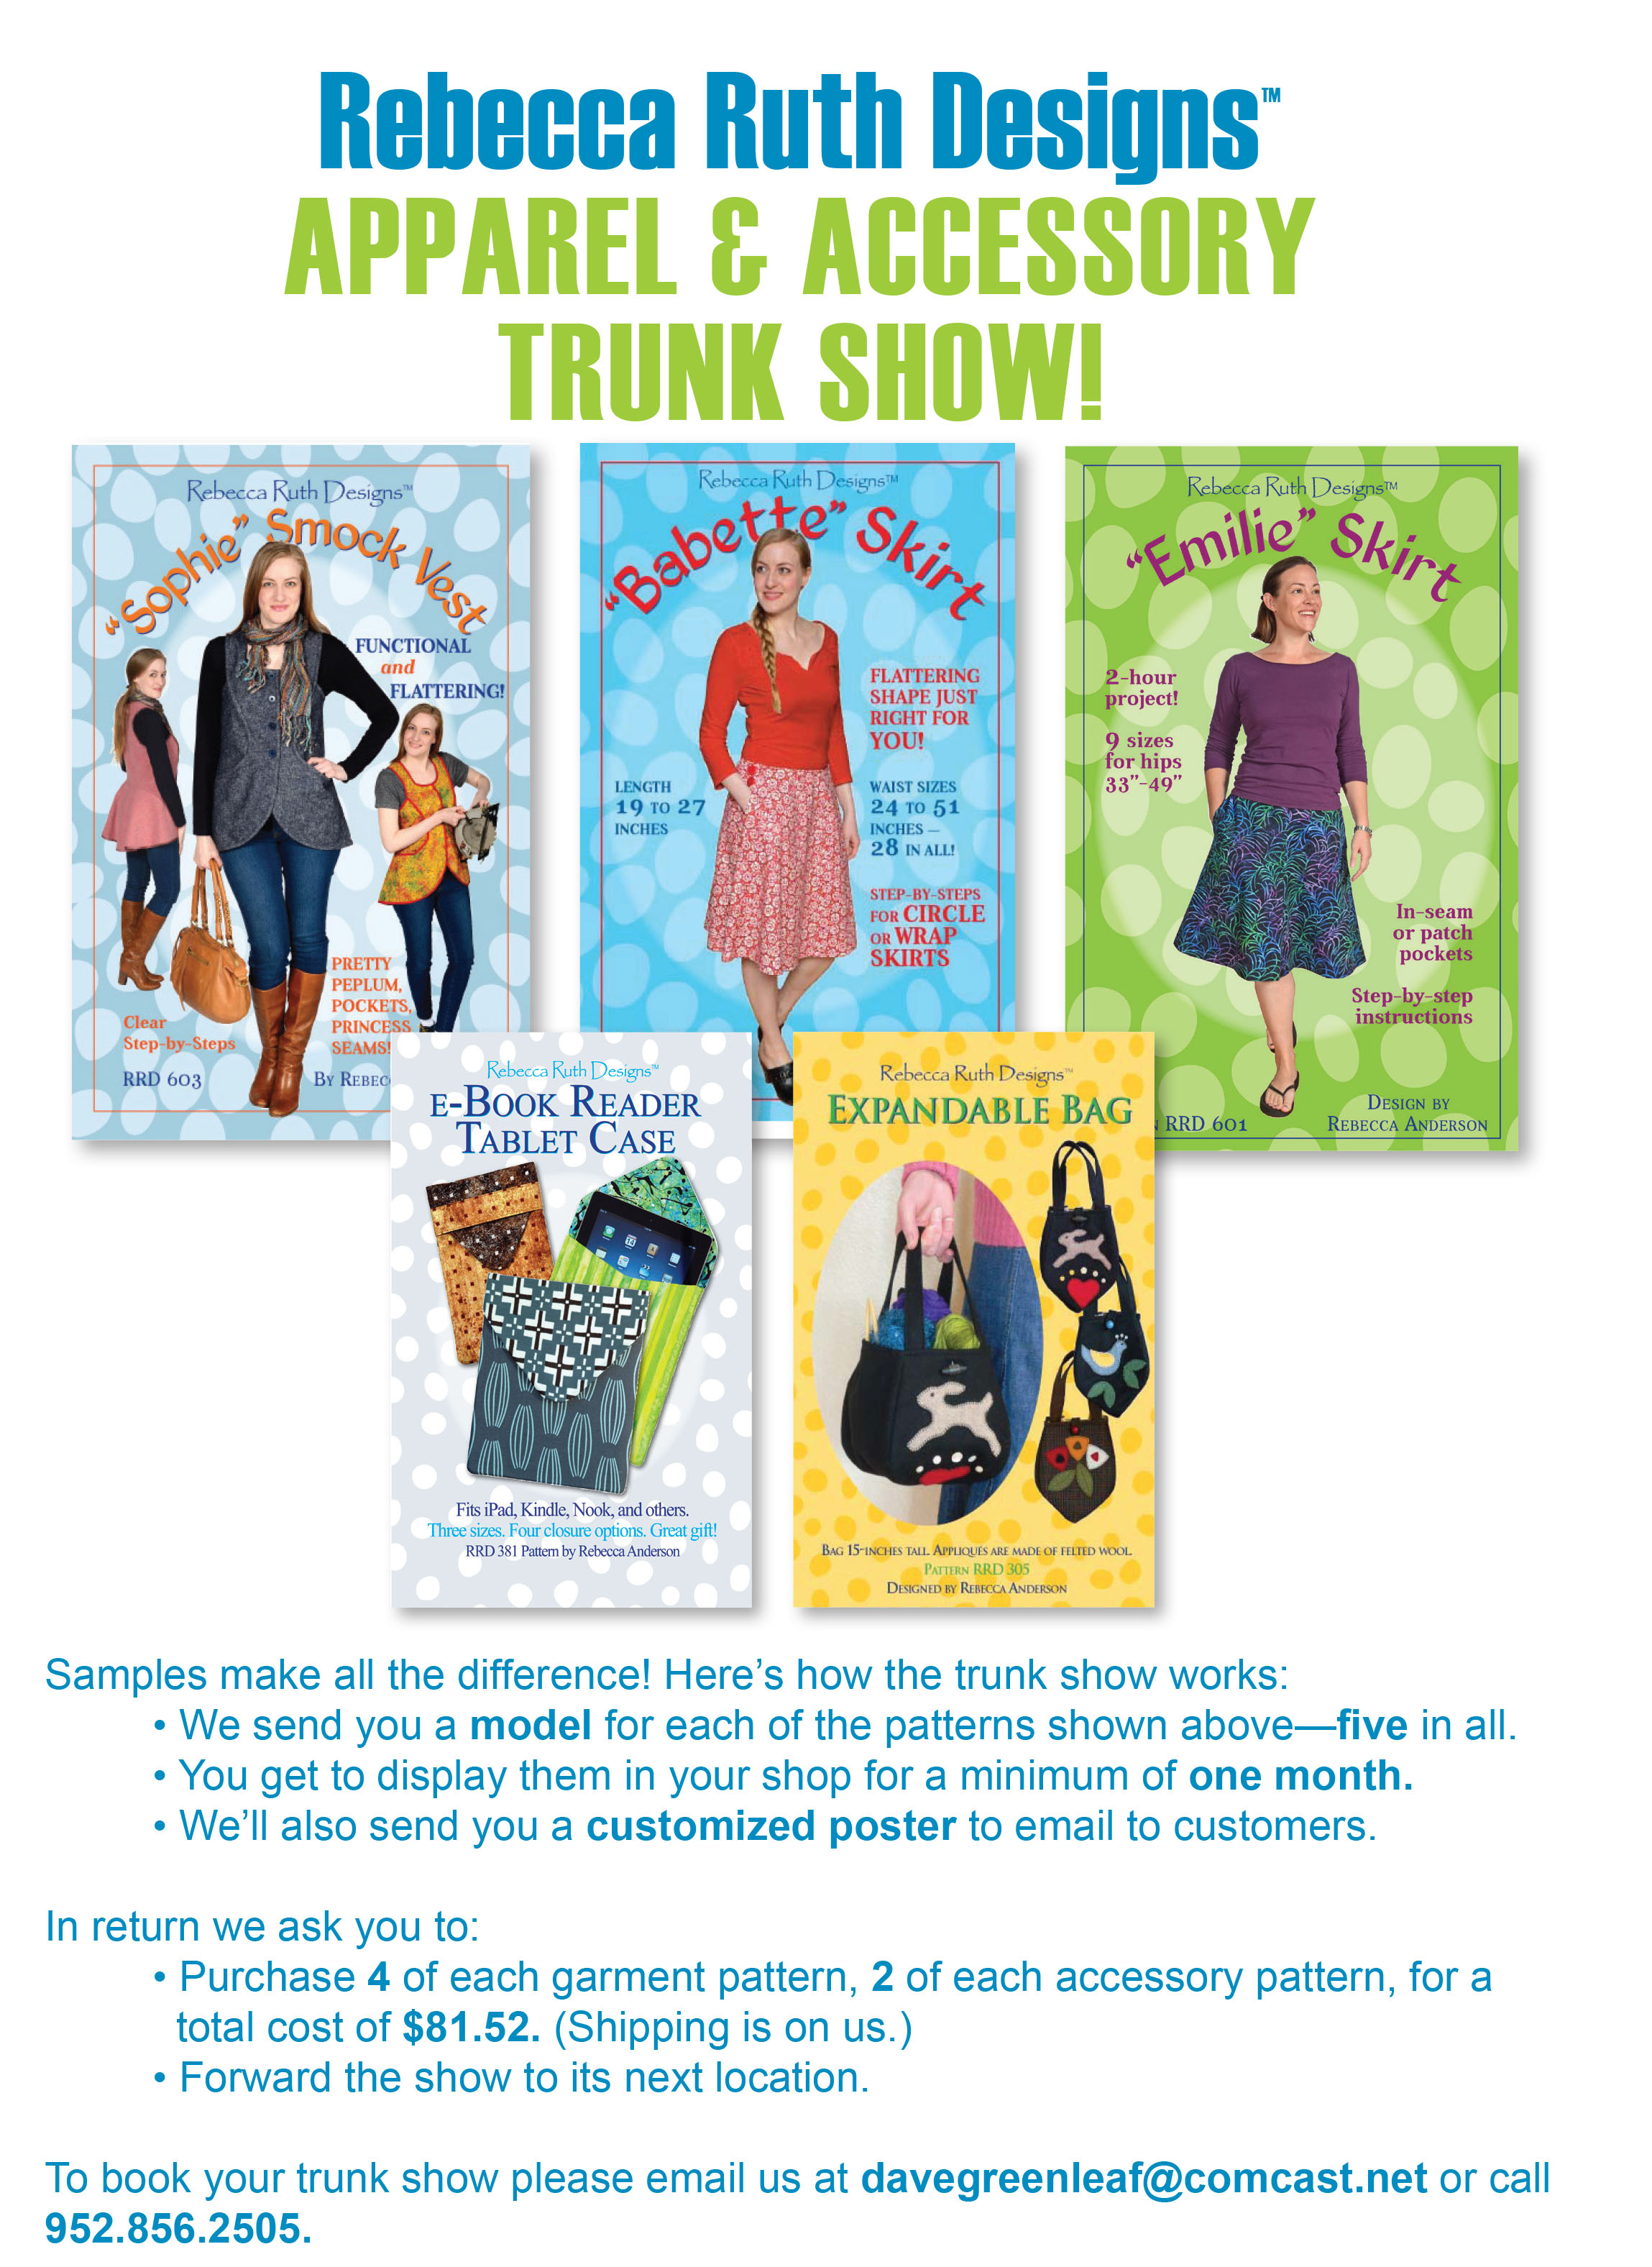 Apparel & Accessory Trunk Show NEW.jpg